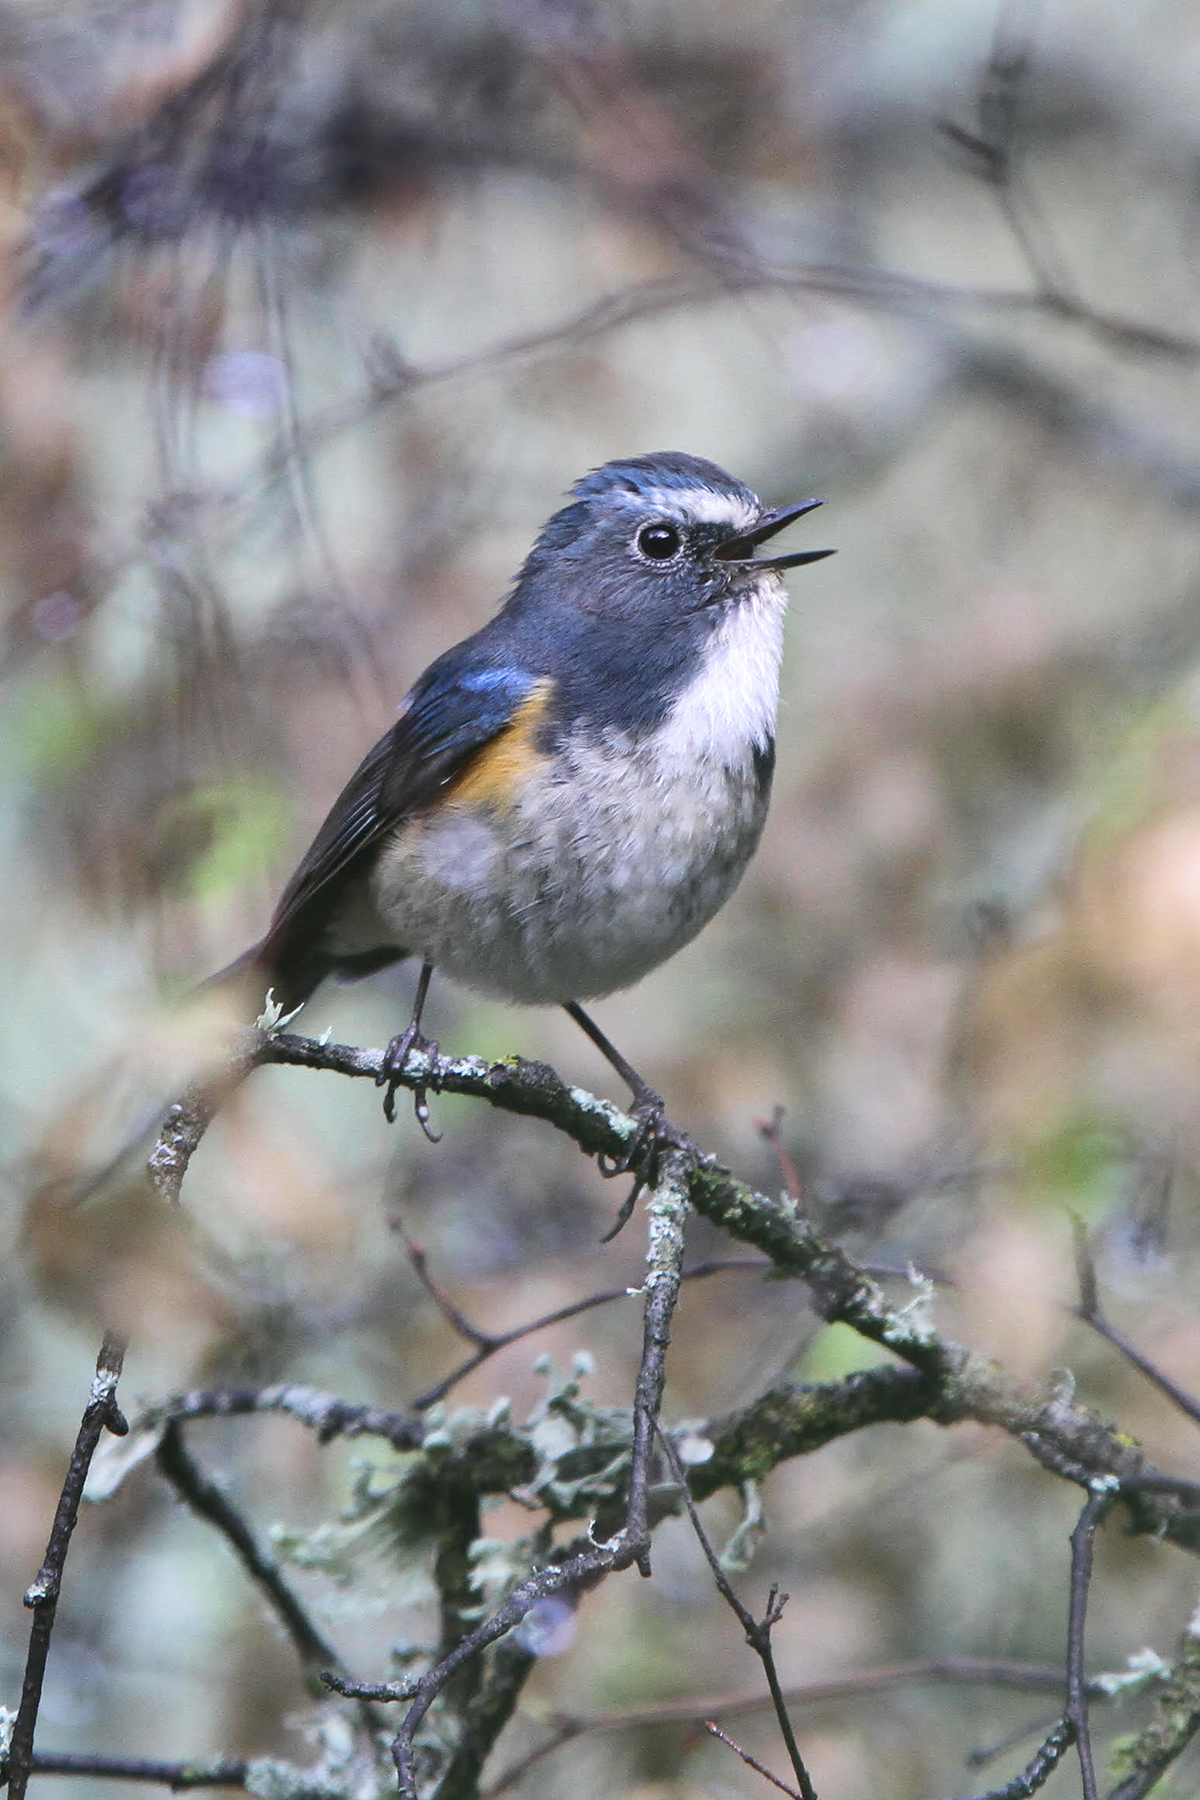 James Eaton from Birdtour Asia very kindly shared with me a photo of an adult-male 'Gansu' Bluetail taken June 2011 at Huzhu Beishan, Haidong Prefecture, Qinghai. (James Eaton/Birdtour Asia)